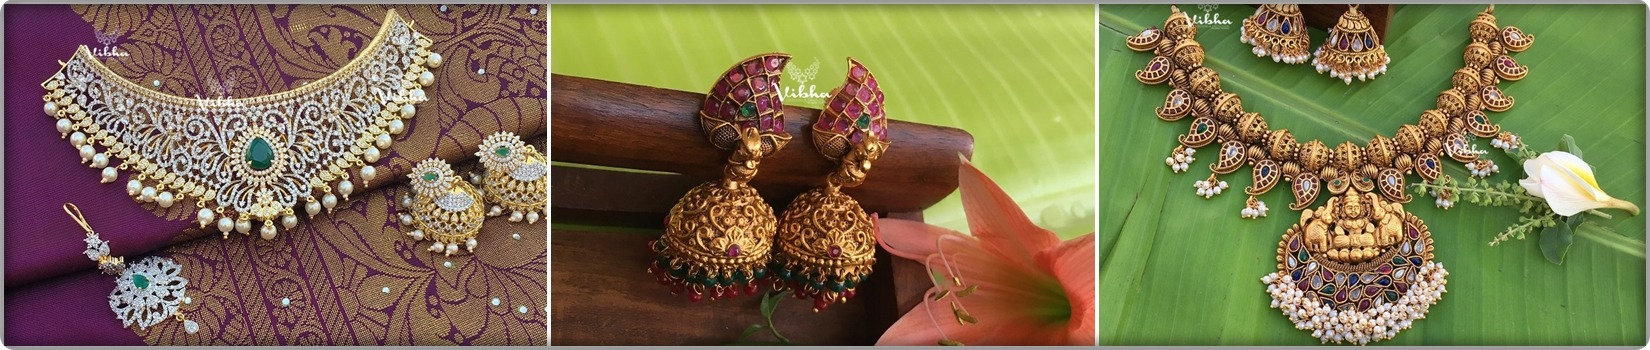 Vibha Creations And Collections